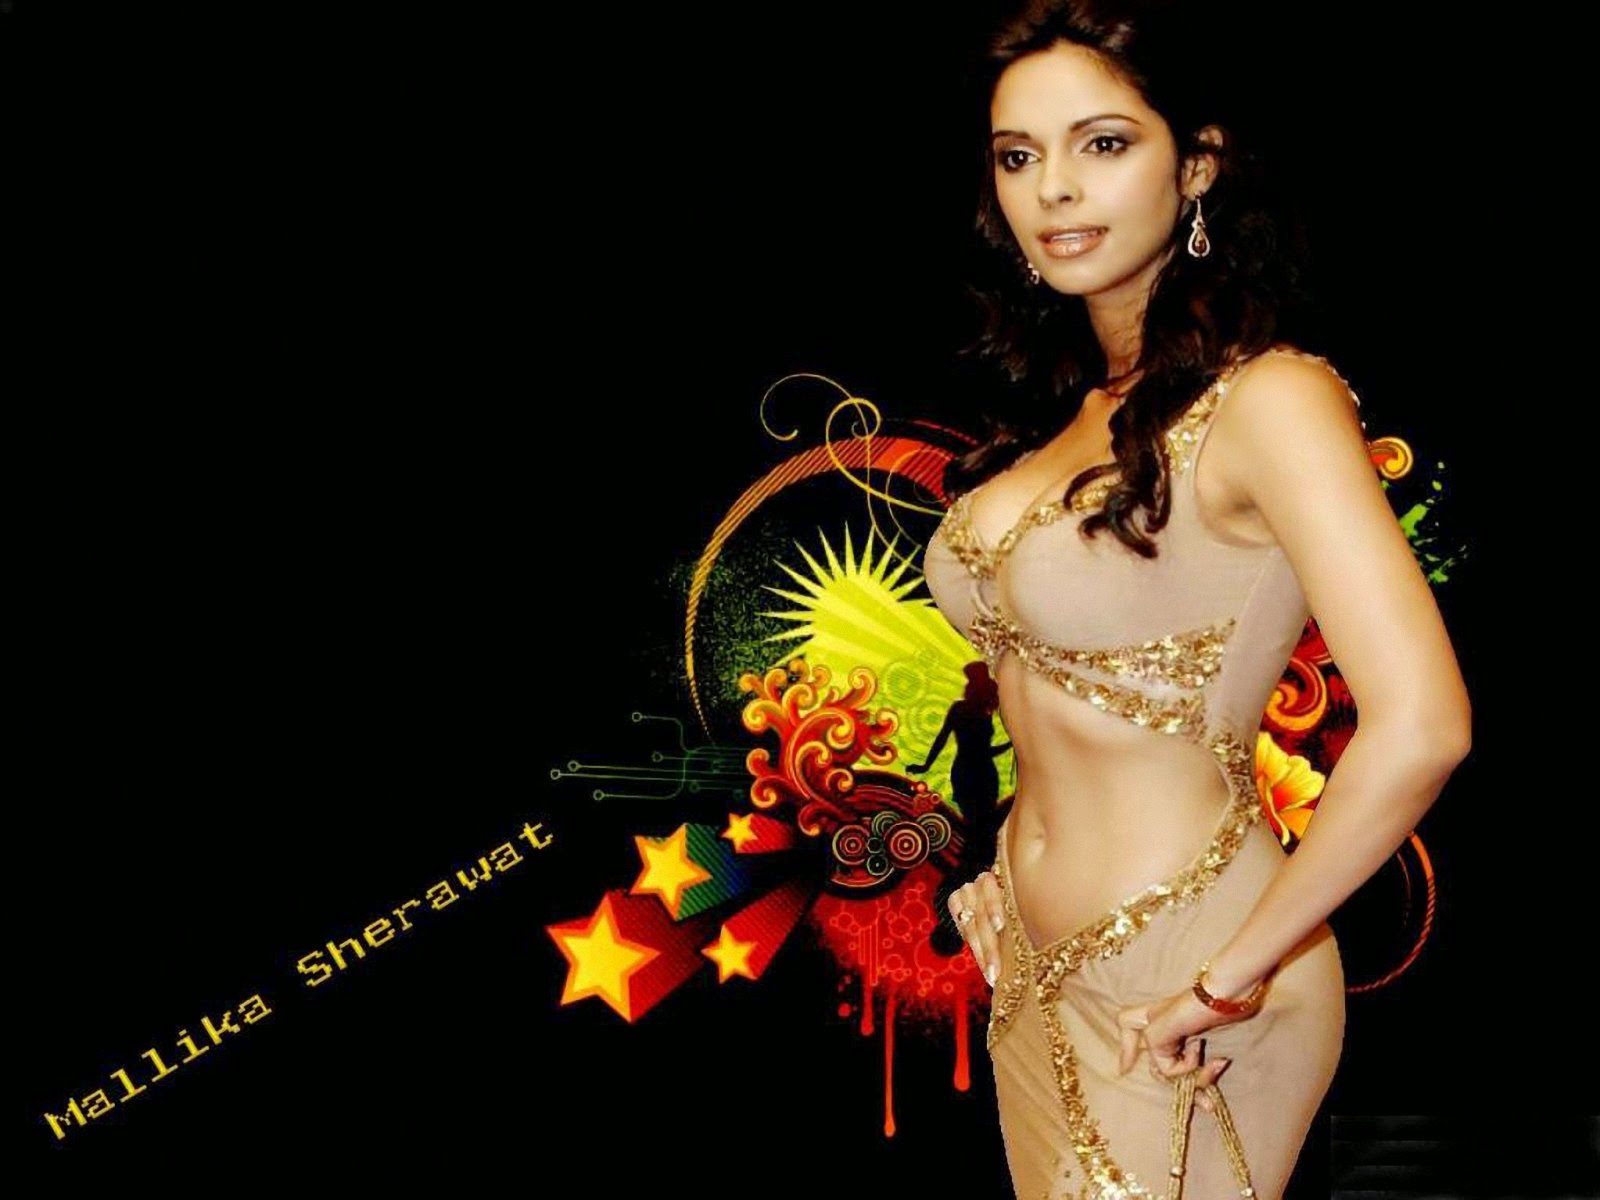 mallika sherawat ke sexy and hot photos